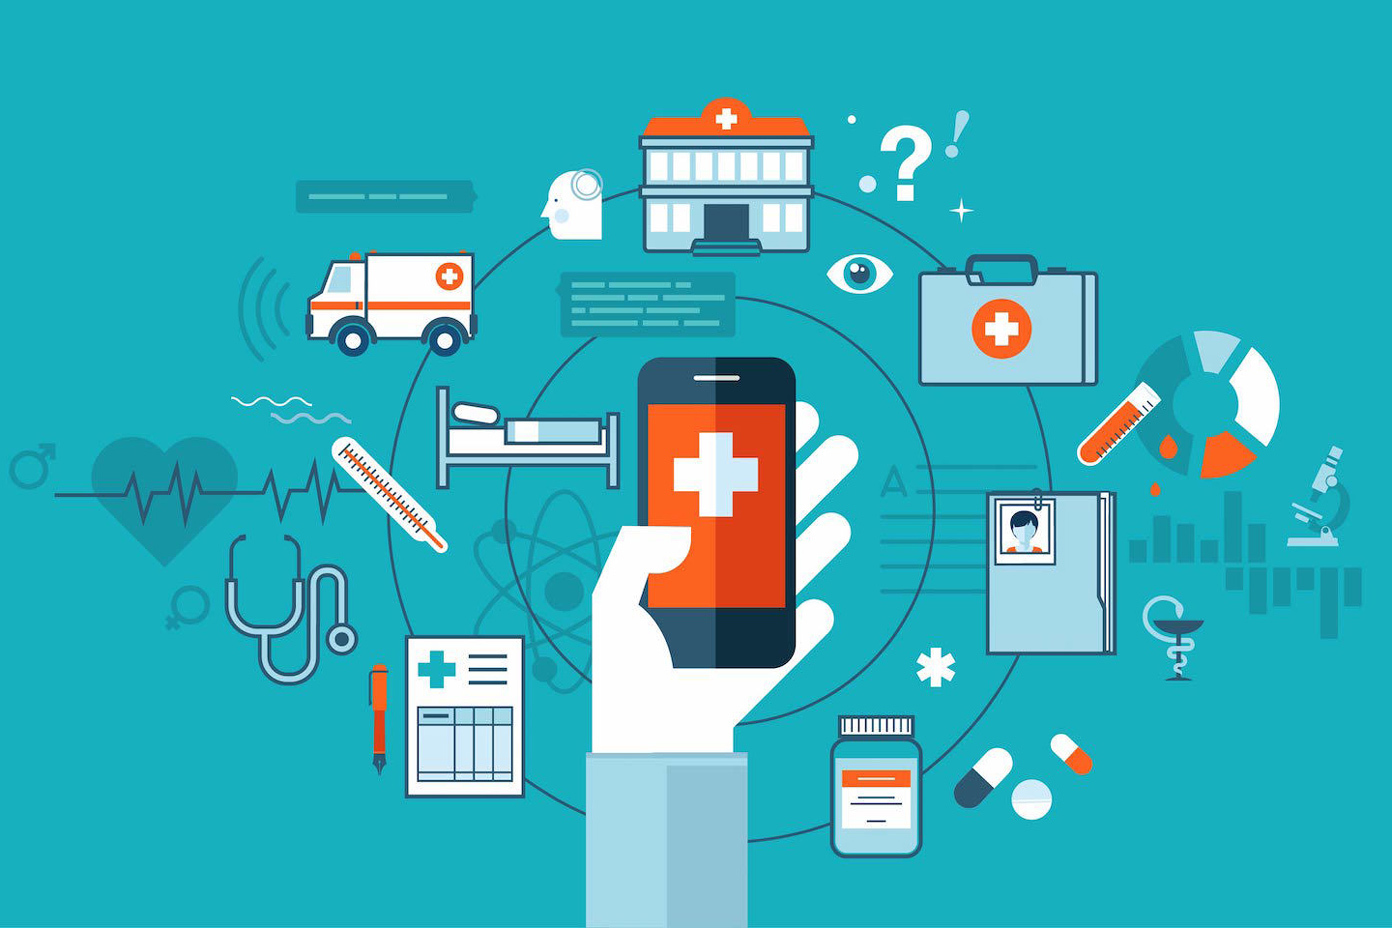 Illustration of a hand holding a phone with health-related icons floating around it.